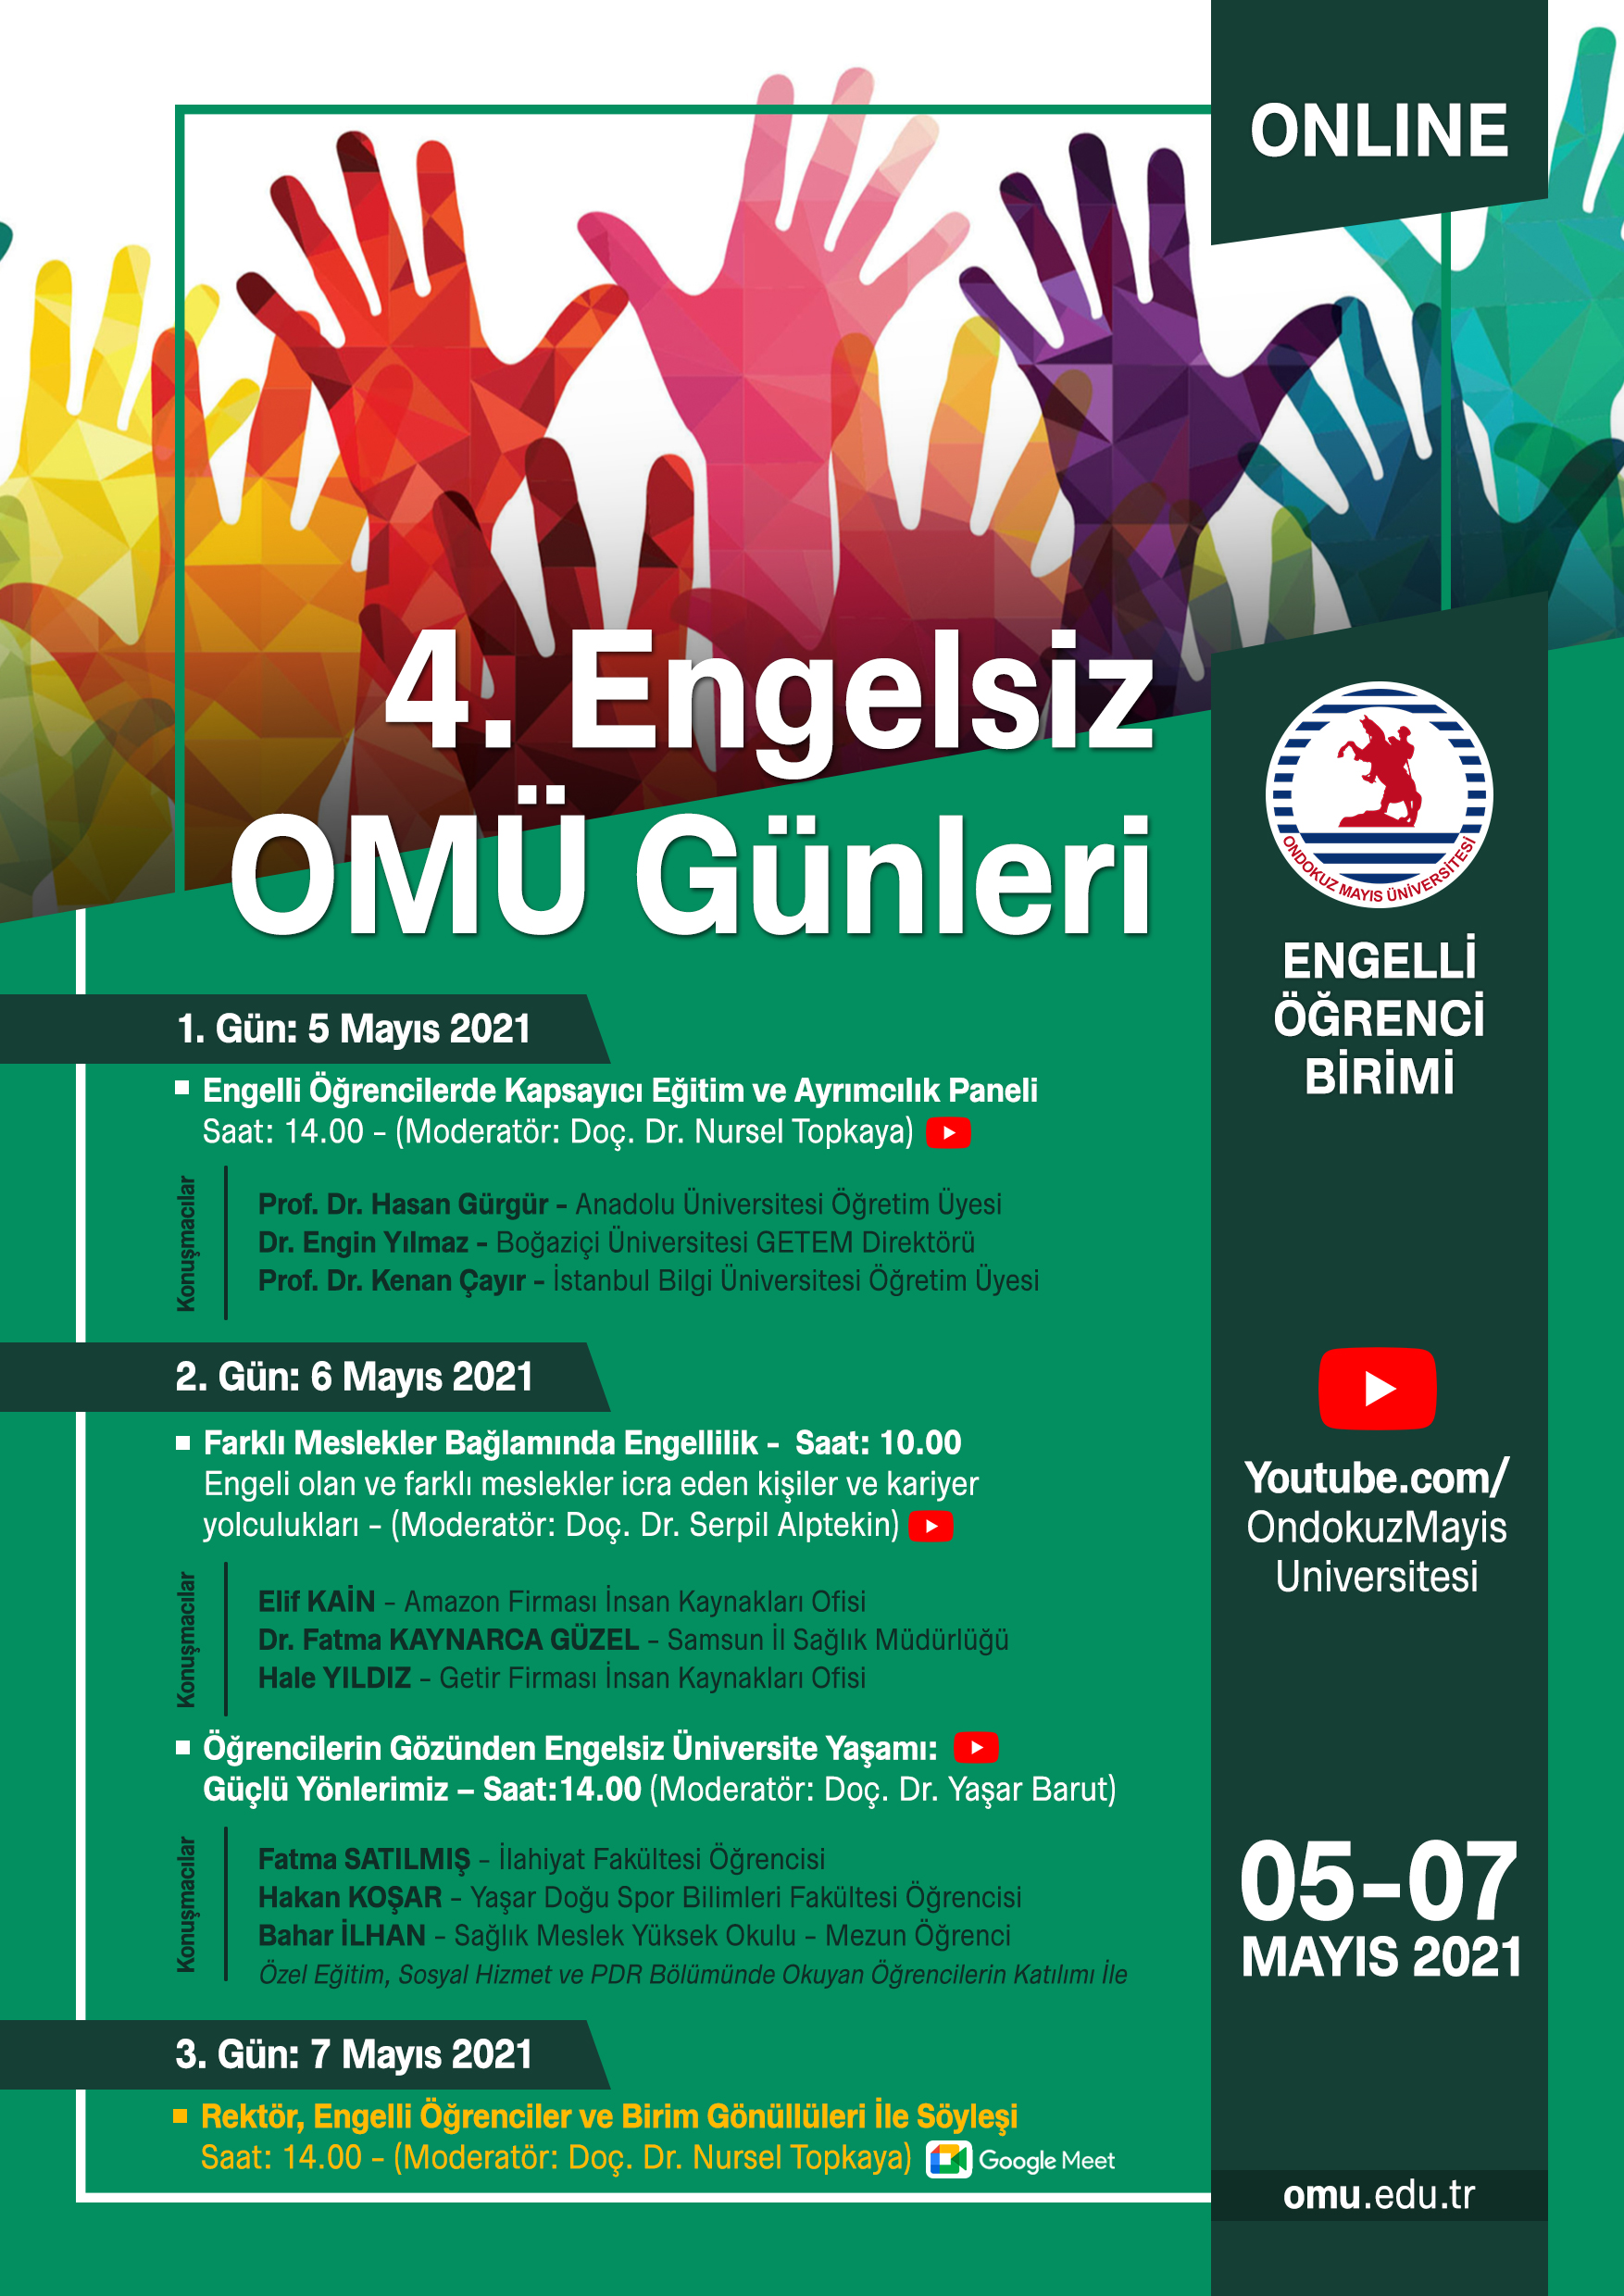 https://www.omu.edu.tr/sites/default/files/4.-engelsiz-omu-gunleri.jpg